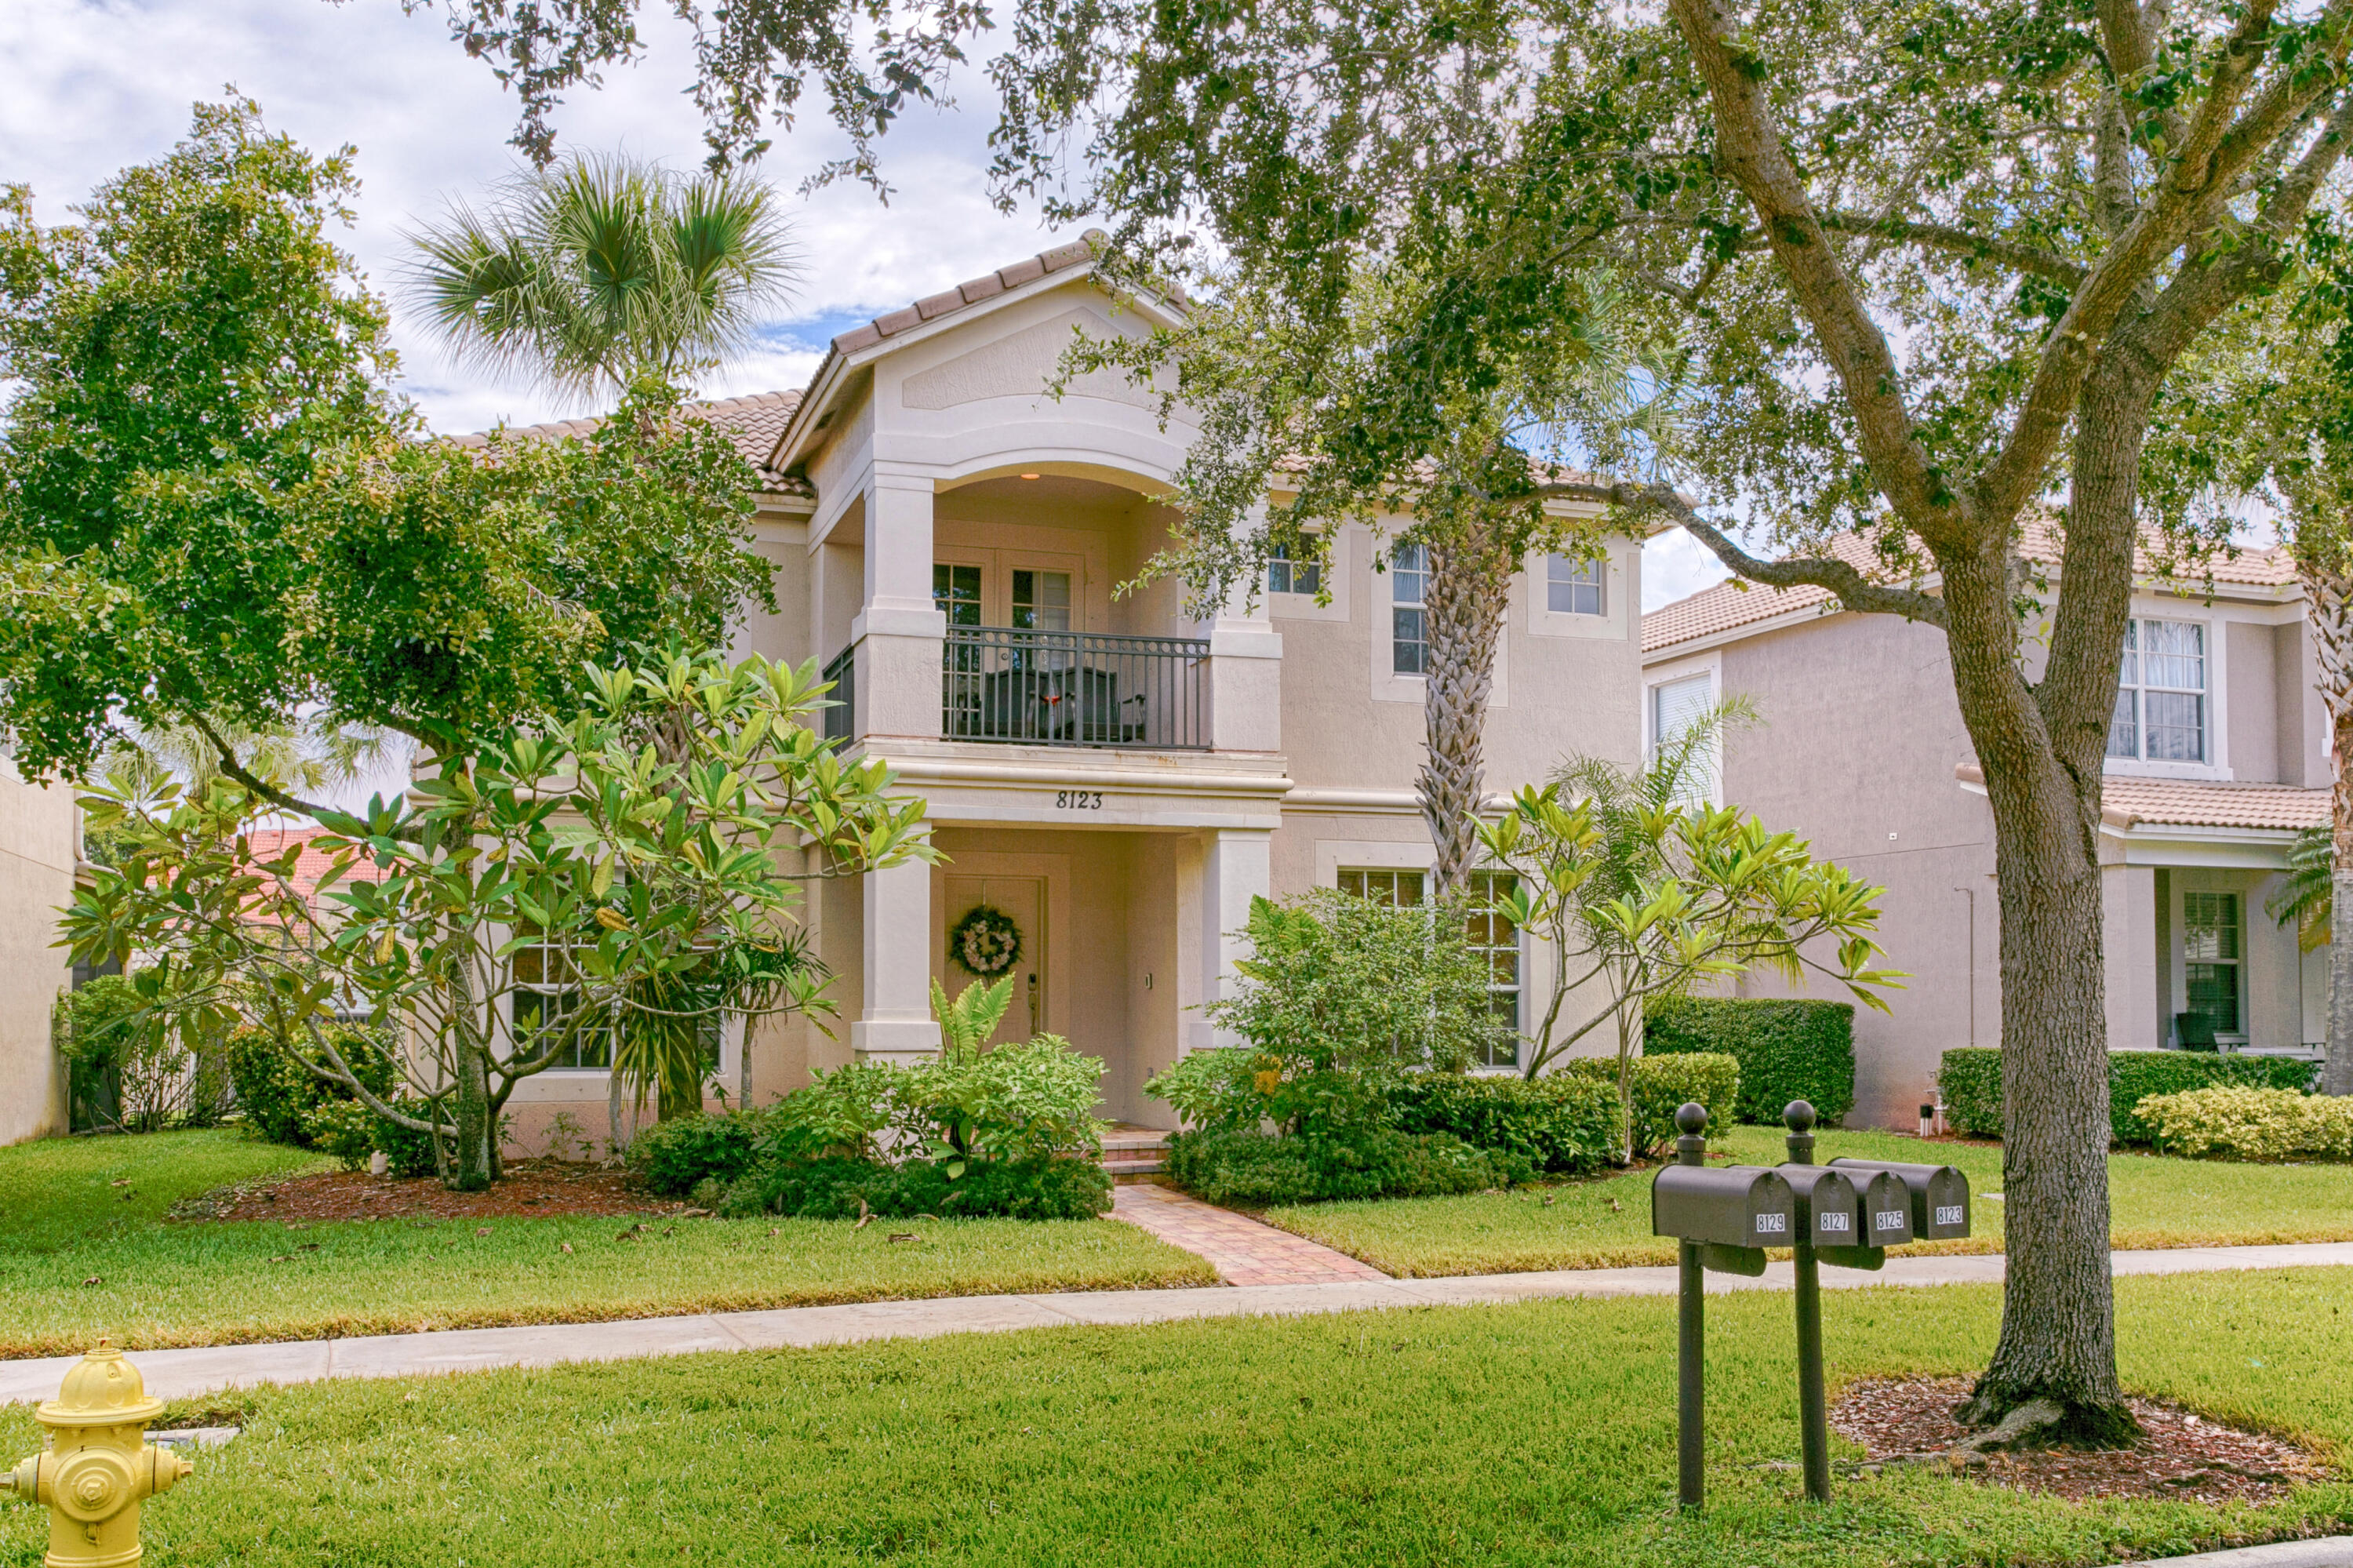 Welcome to Florida in this gated community in Palm Beach Gardens. This seasonal two-story home offers 4 BR's/ 2.5 baths & a downstairs office or den. This home has been recently renovated & decorated to have a relaxing beach feel. Enjoy cooking in  this large eat in kitchen. Relax in the FR/ with newly installed beautiful vinyl plank flooring throughout the entire downstairs living area. Formal DR, plenty of storage and the house has been freshly painted. The upstairs master suite has walk in closets, dual sinks, a large tub & separate shower & its own private balcony. The other 3 upstairs bedrooms are large and share 1 bathroom. The home offers a covered  patio, small yard with a detached 2 car garage and extra parking also.  Community pool, close to shopping, dining and entertainment.